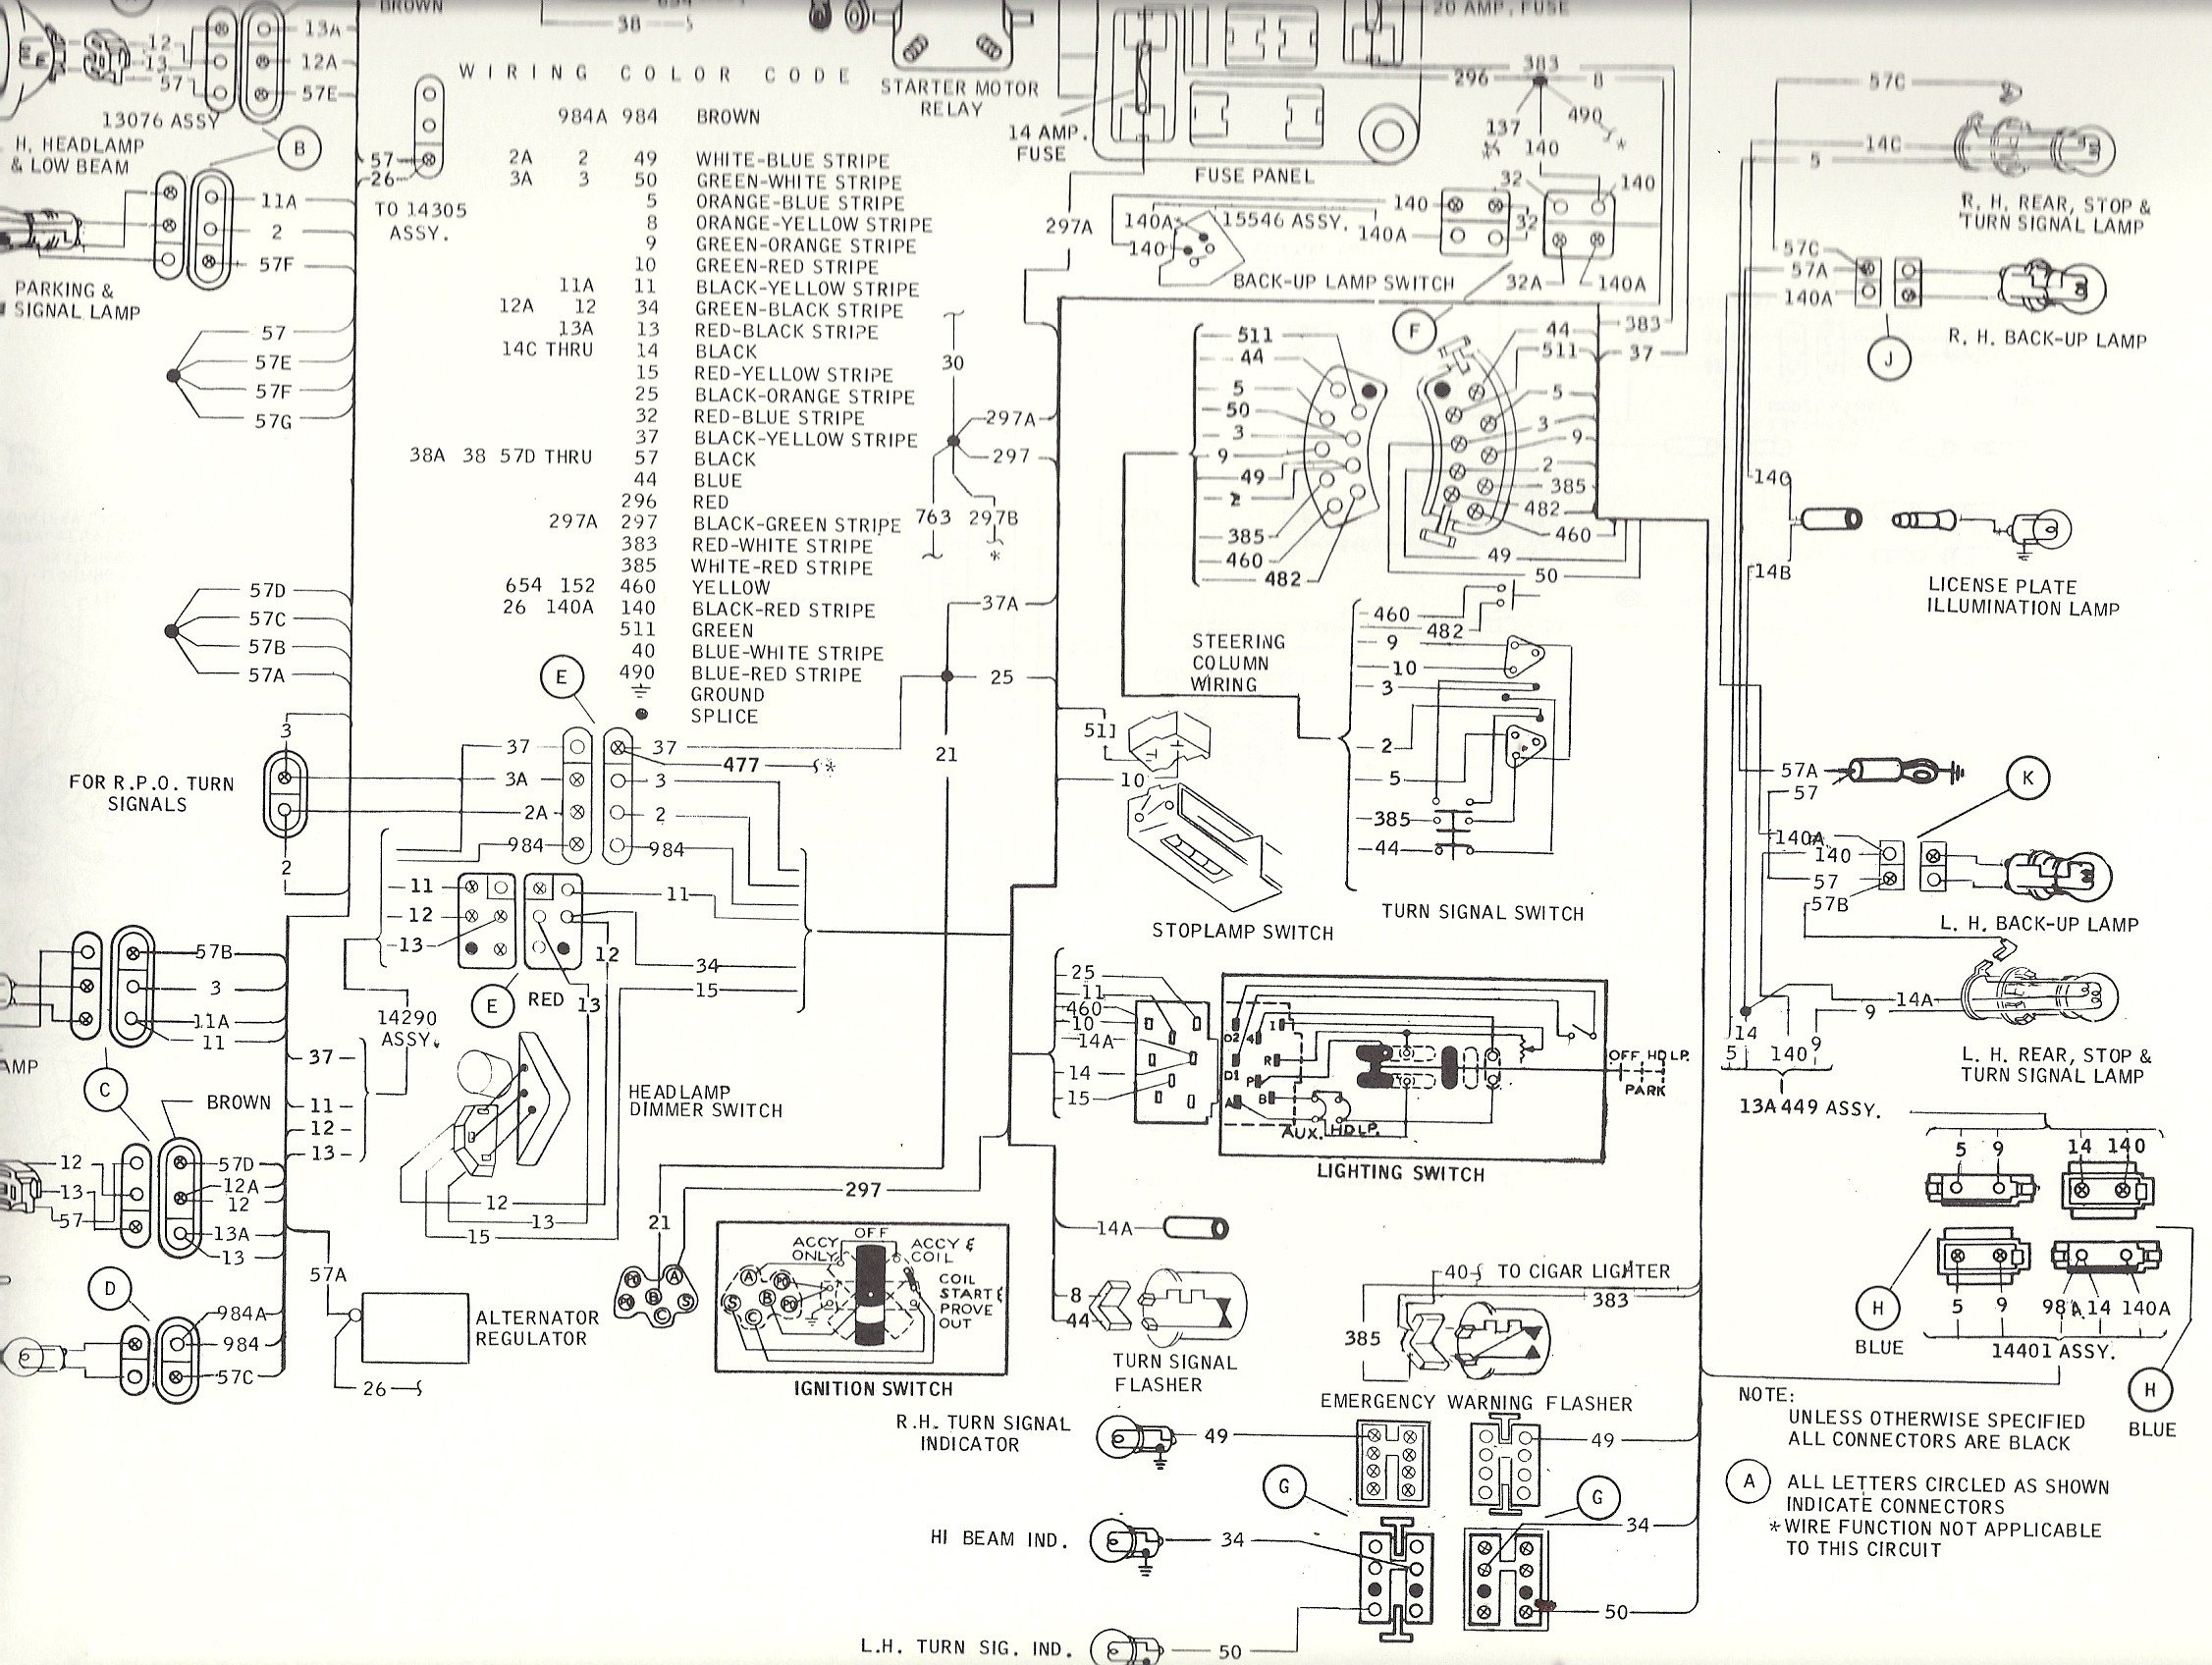 wiring diagram 69 mustang ignition switch the wiring diagram mystery wire 1968 vintage mustang forums wiring diagram